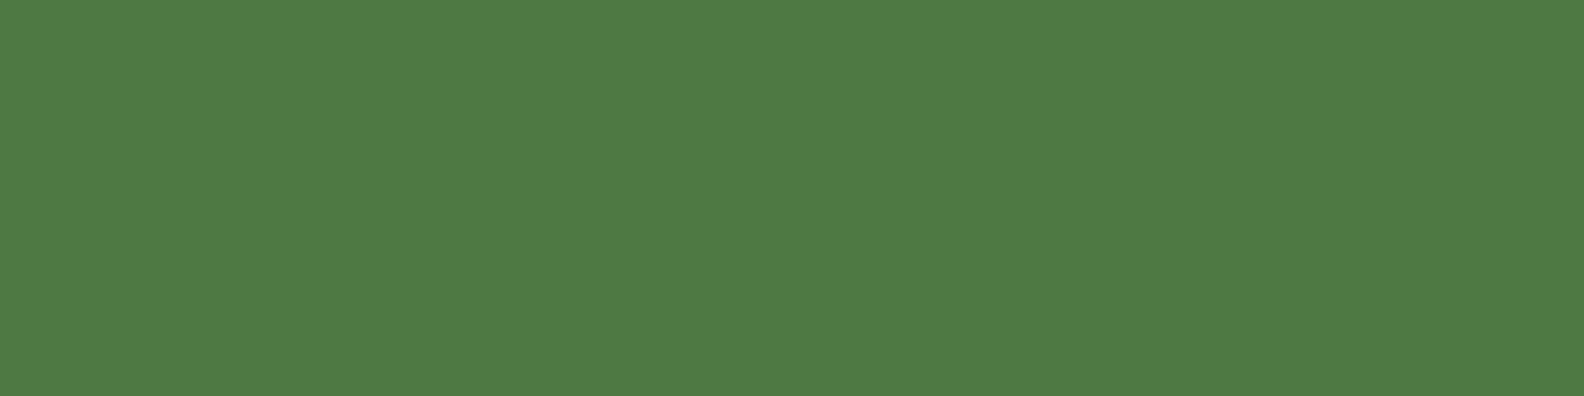 1584x396 Fern Green Solid Color Background